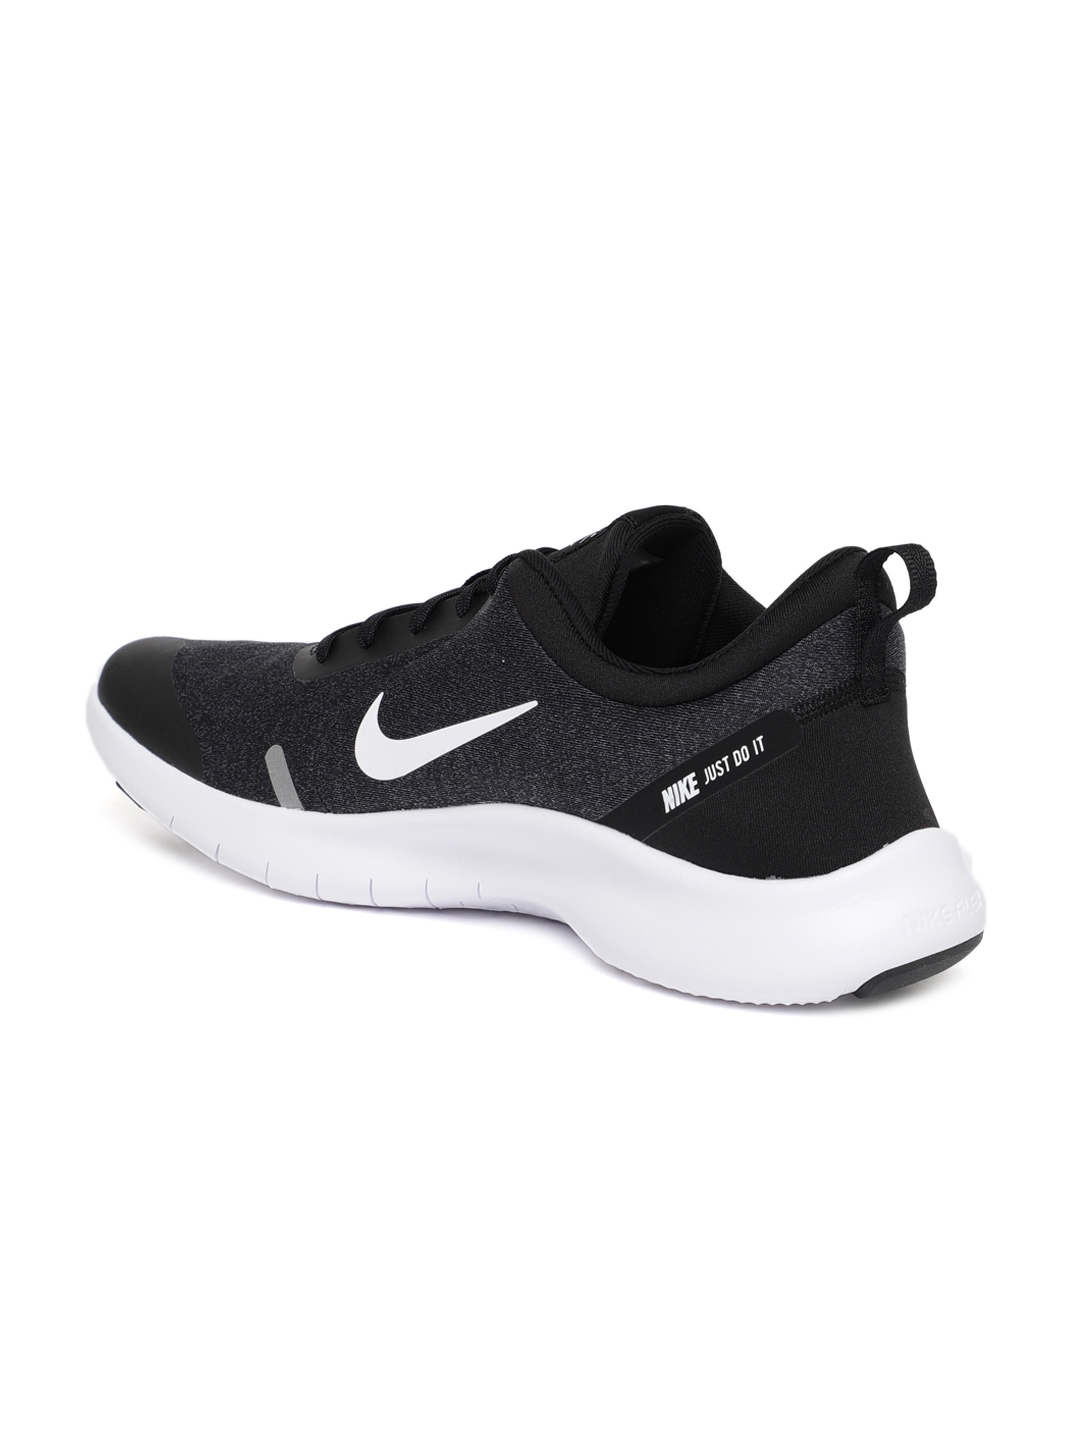 9580e0cea20c2 Buy Nike Men Black FLEX EXPERIENCE 8 Running Shoes - Sports Shoes ...